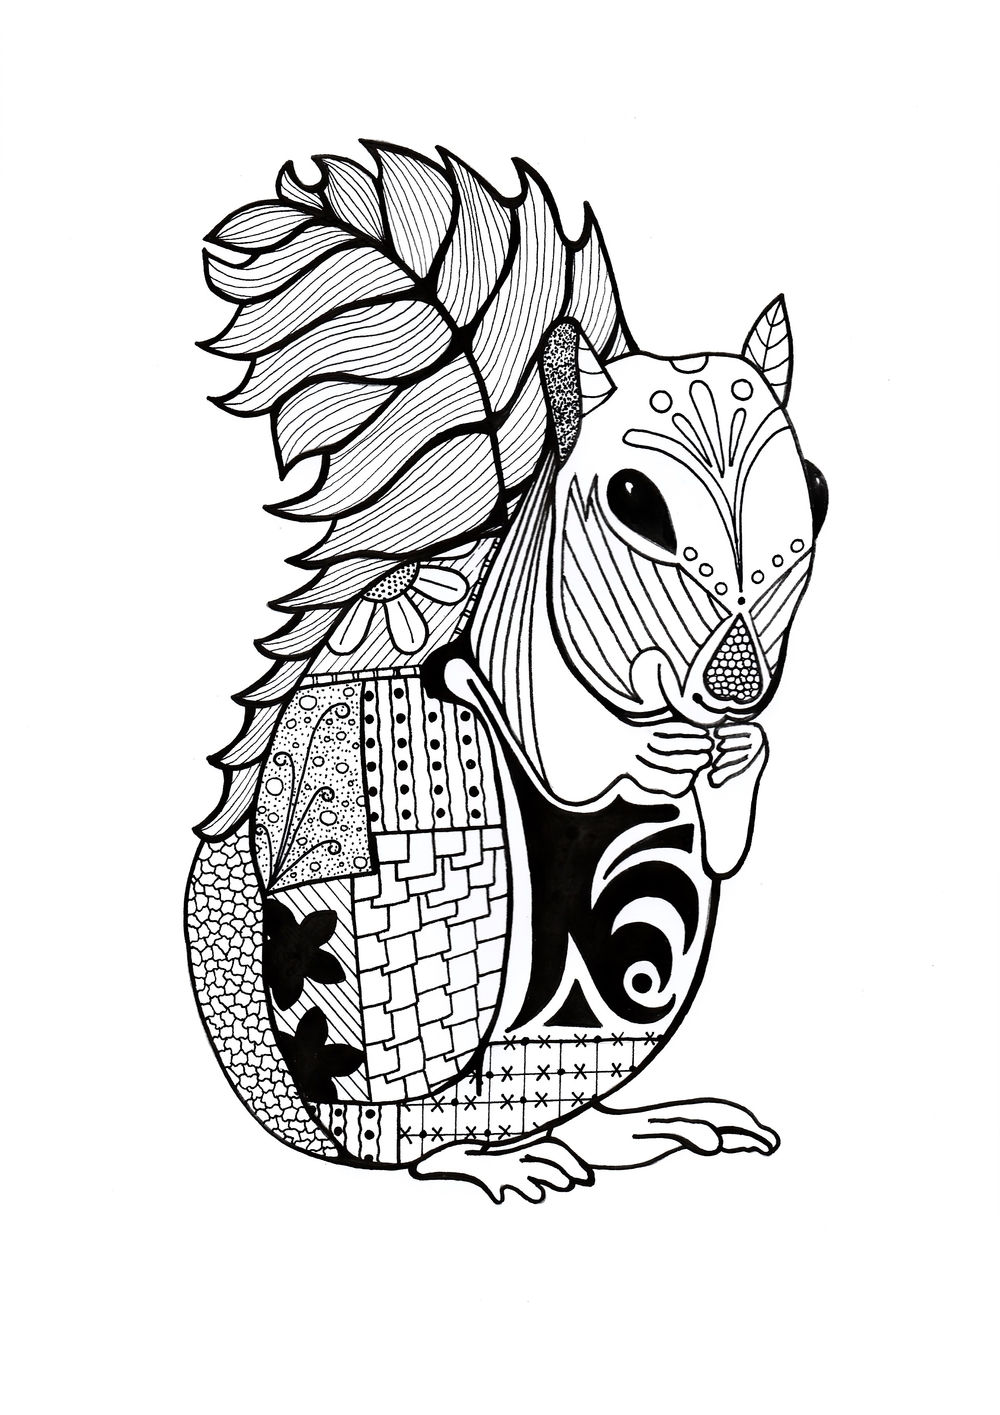 Intricate Squirrel Adult Coloring Page | FaveCrafts.com | free printable coloring pages for adults animals